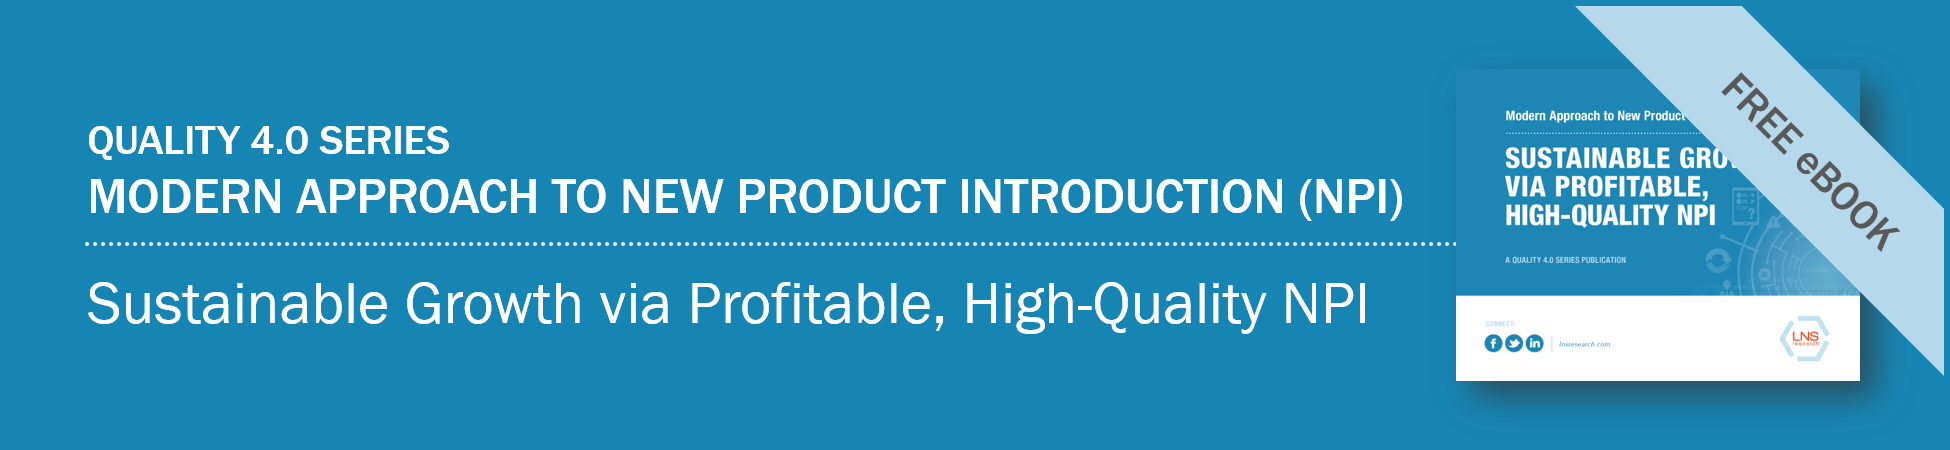 eBook: Modern Approach to New Product Introduction (NPI): Sustainable Growth Via Profitable, High-Quality NPI